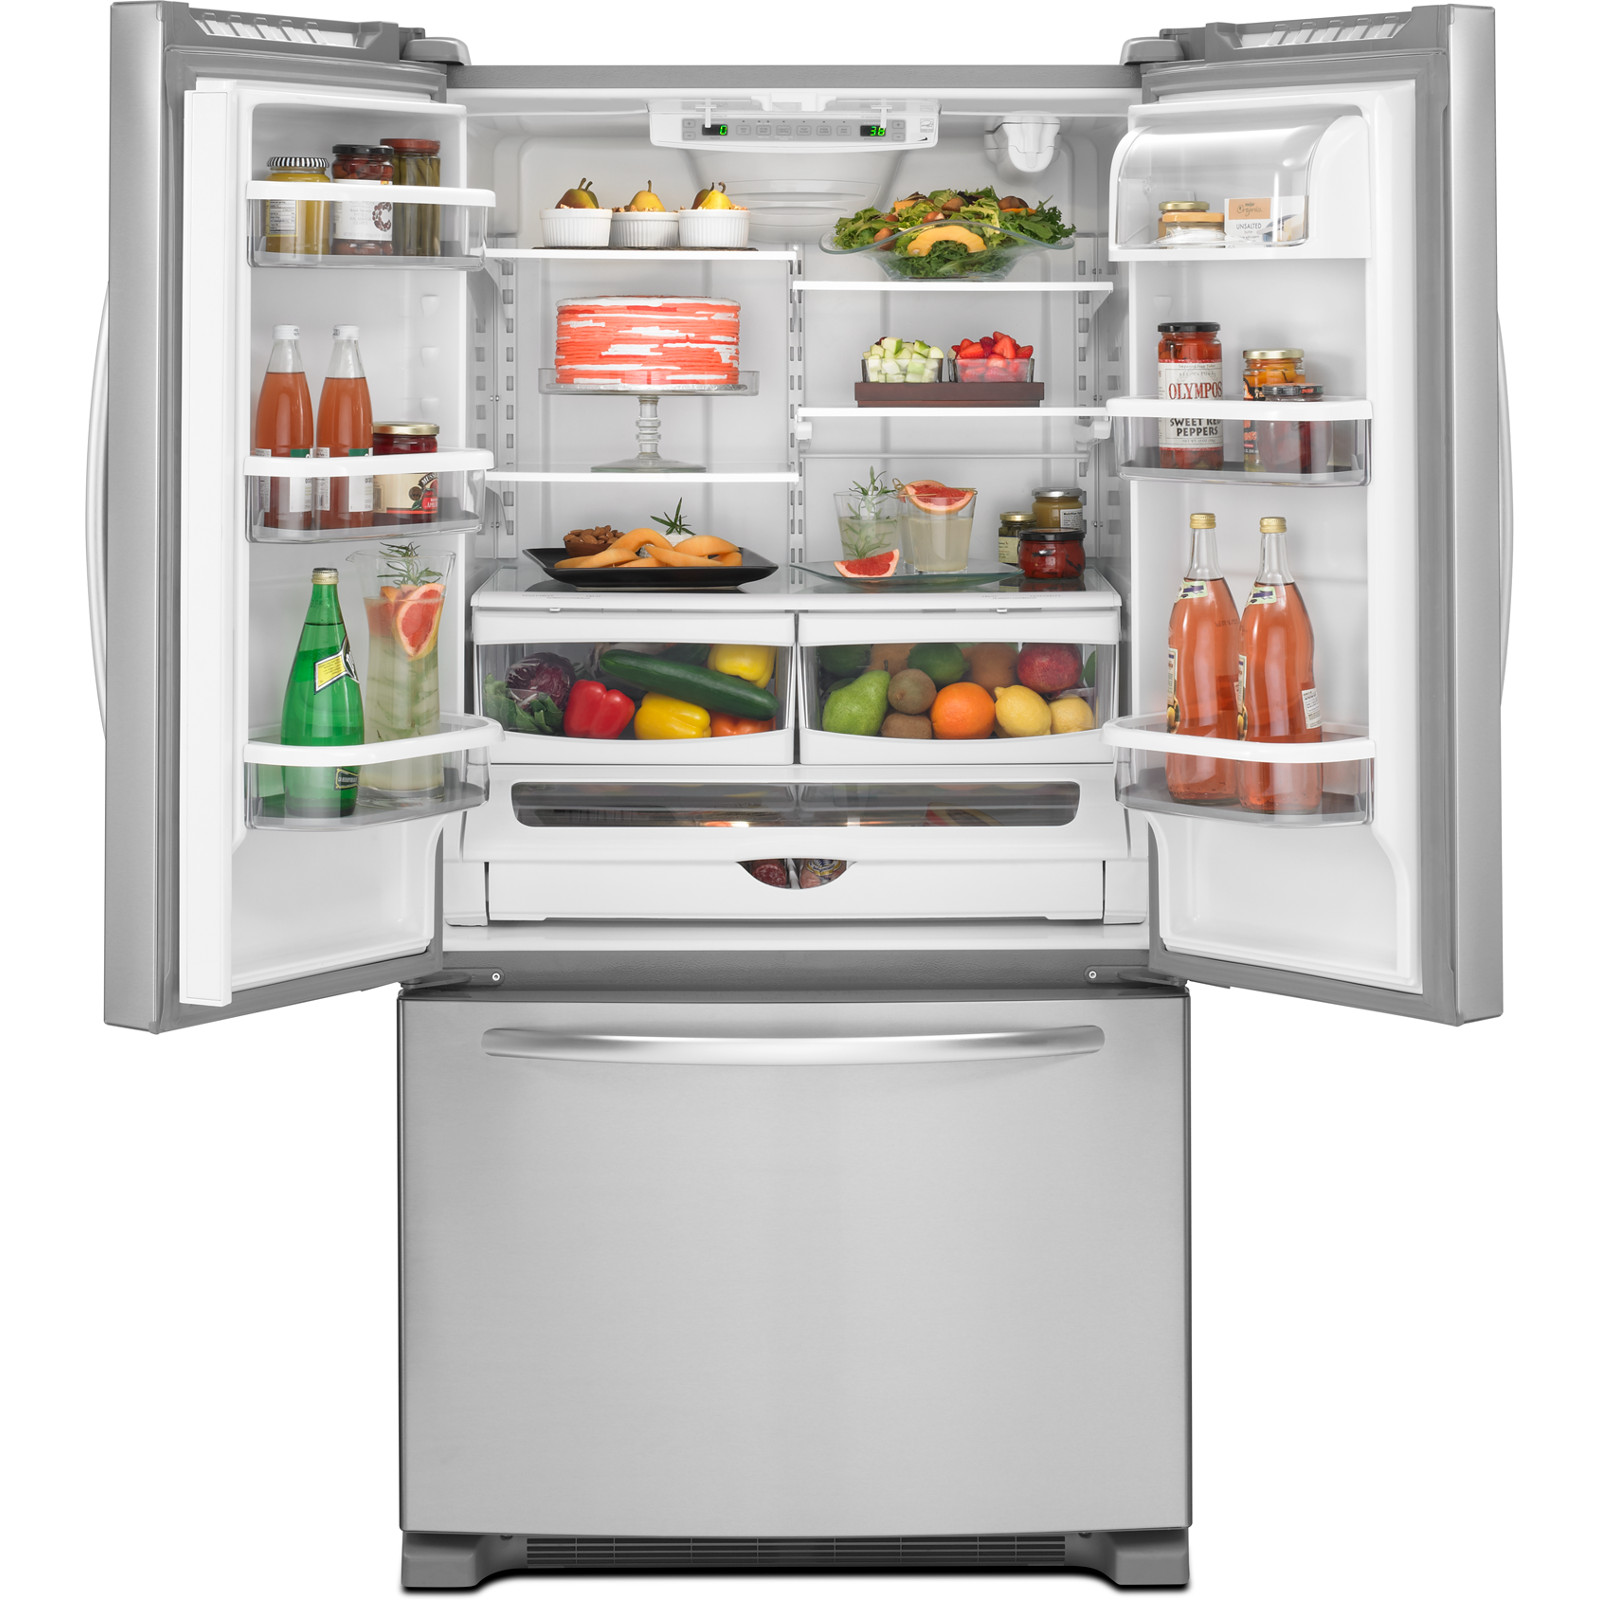 KitchenAid 25 cu. ft. French Door Refrigerator w/ Water Dispenser Inside - Stainless Steel